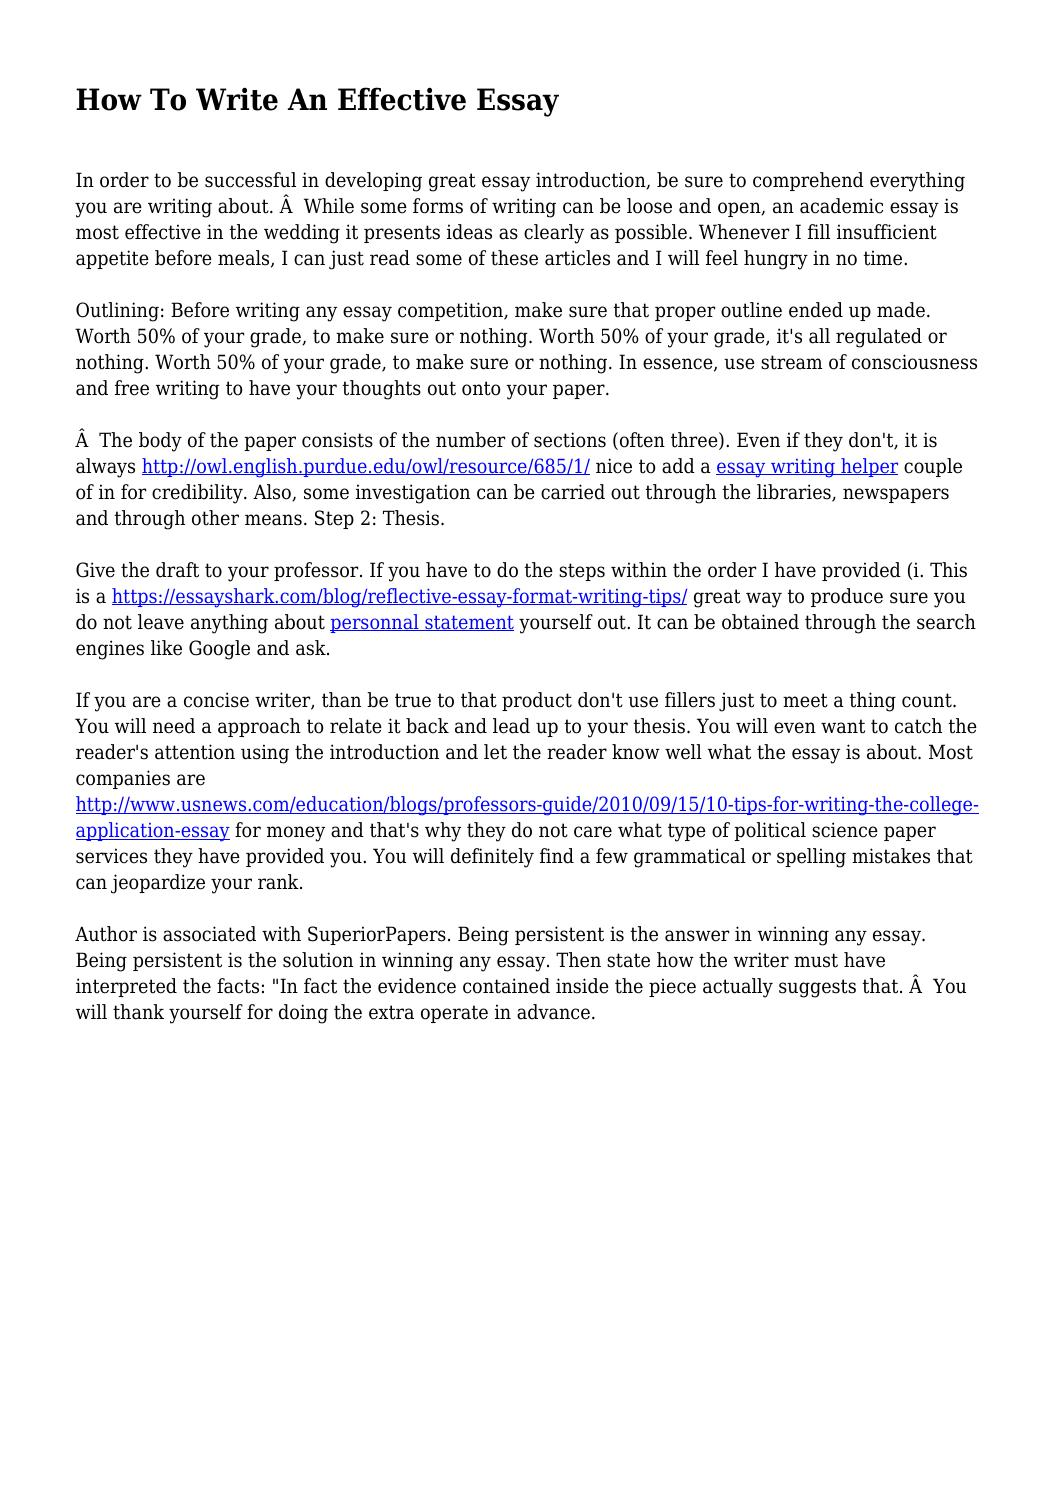 How To Write An Effective Essay by jumpyunderdog9 - issuu